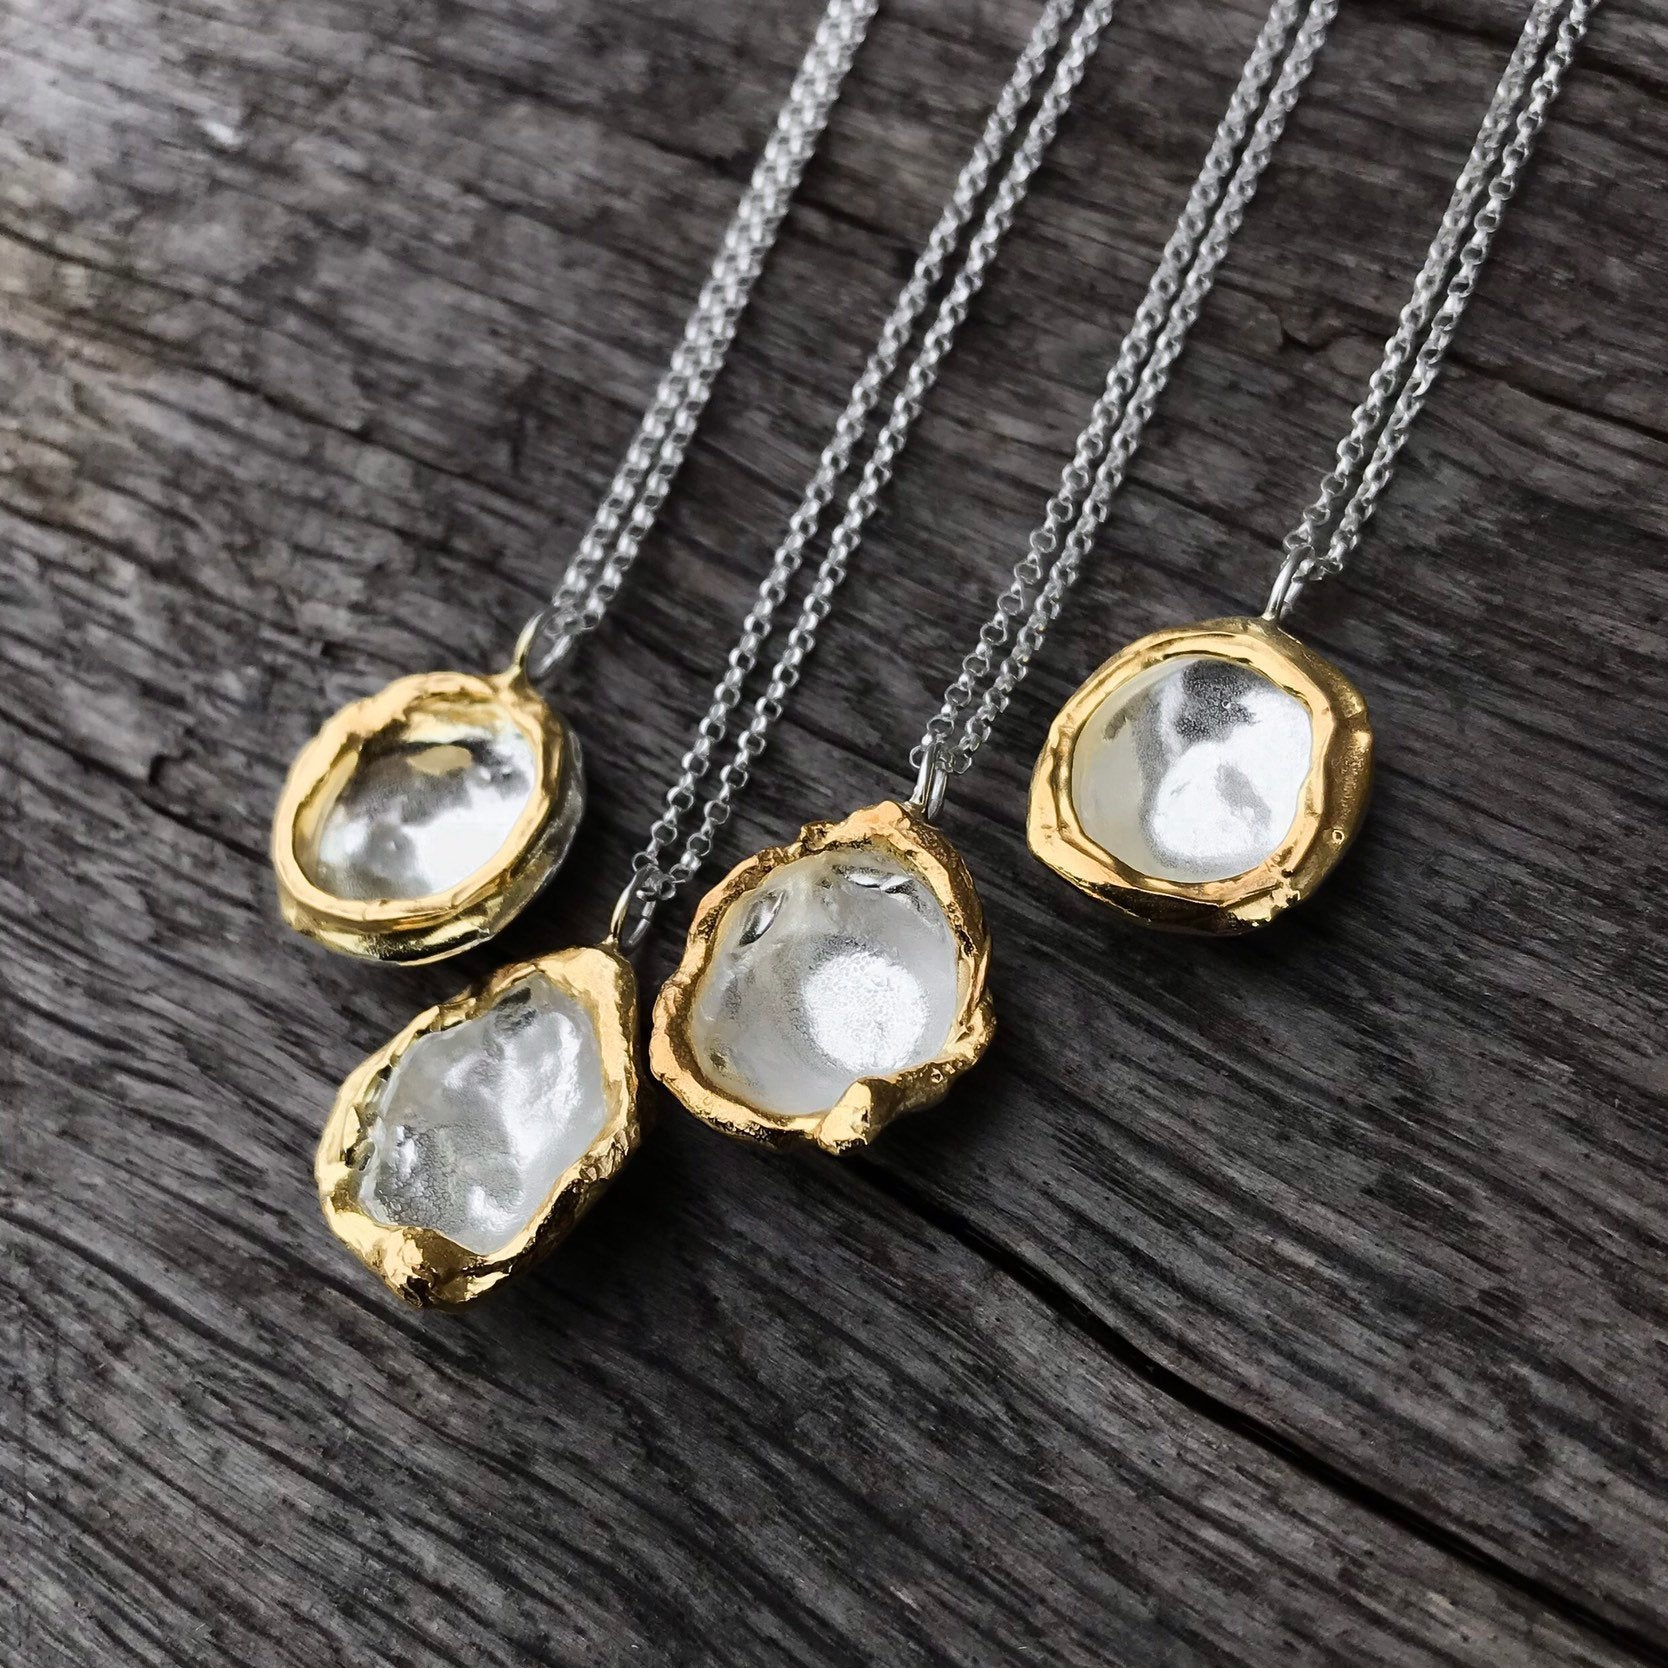 Silver And Gold Necklace, Gold Edged Sterling Silver Pendant Necklace, Recycled Silver And 24k Gold, Organic Water Droplet Necklace Within 2019 August Droplet Pendant Necklaces (View 18 of 25)